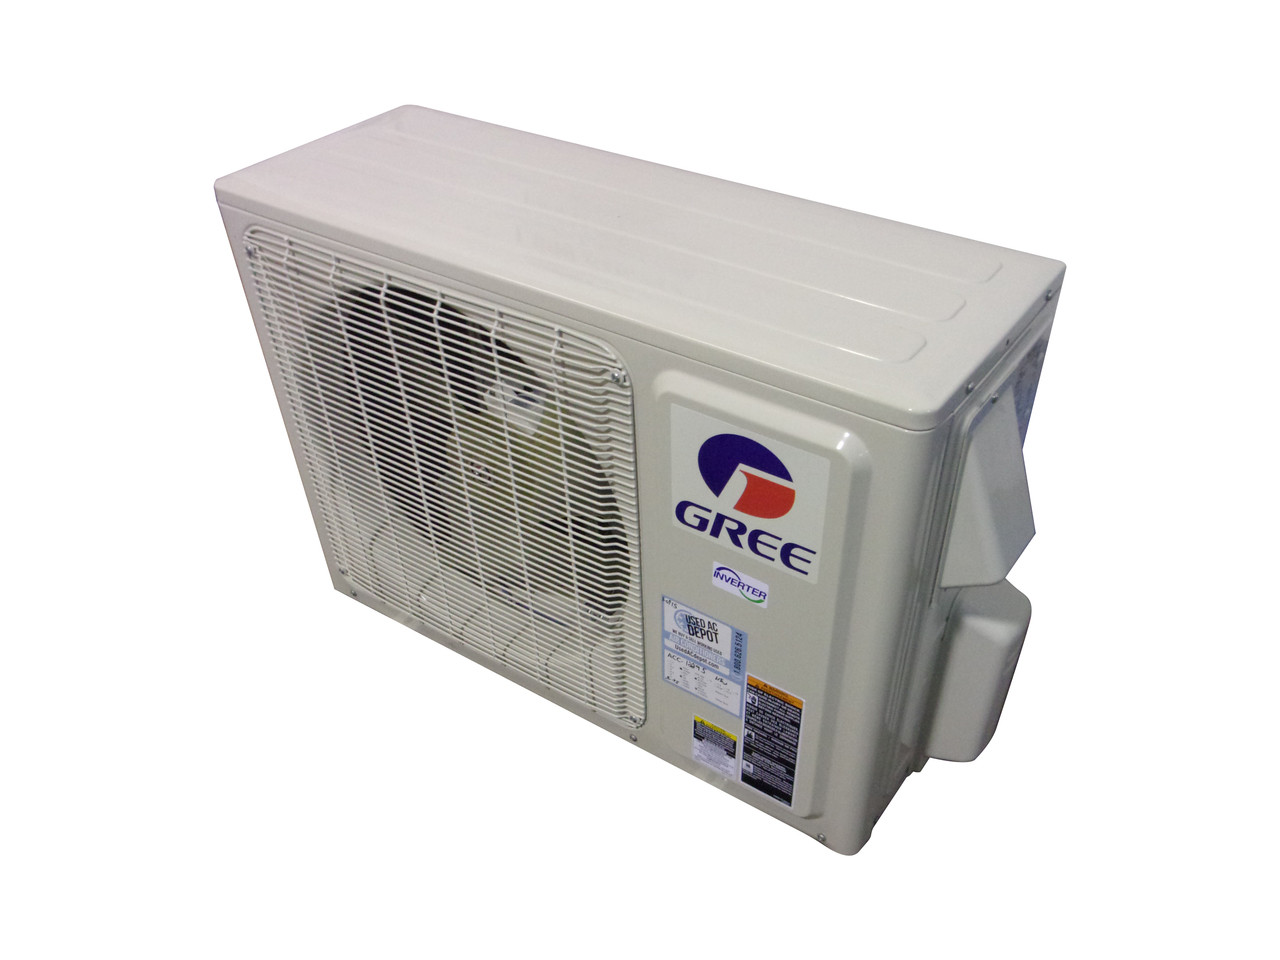 GREE Scratch & Dent Central Air Conditioner Mini Split CROWN09HP230V1AO  ACC-12295